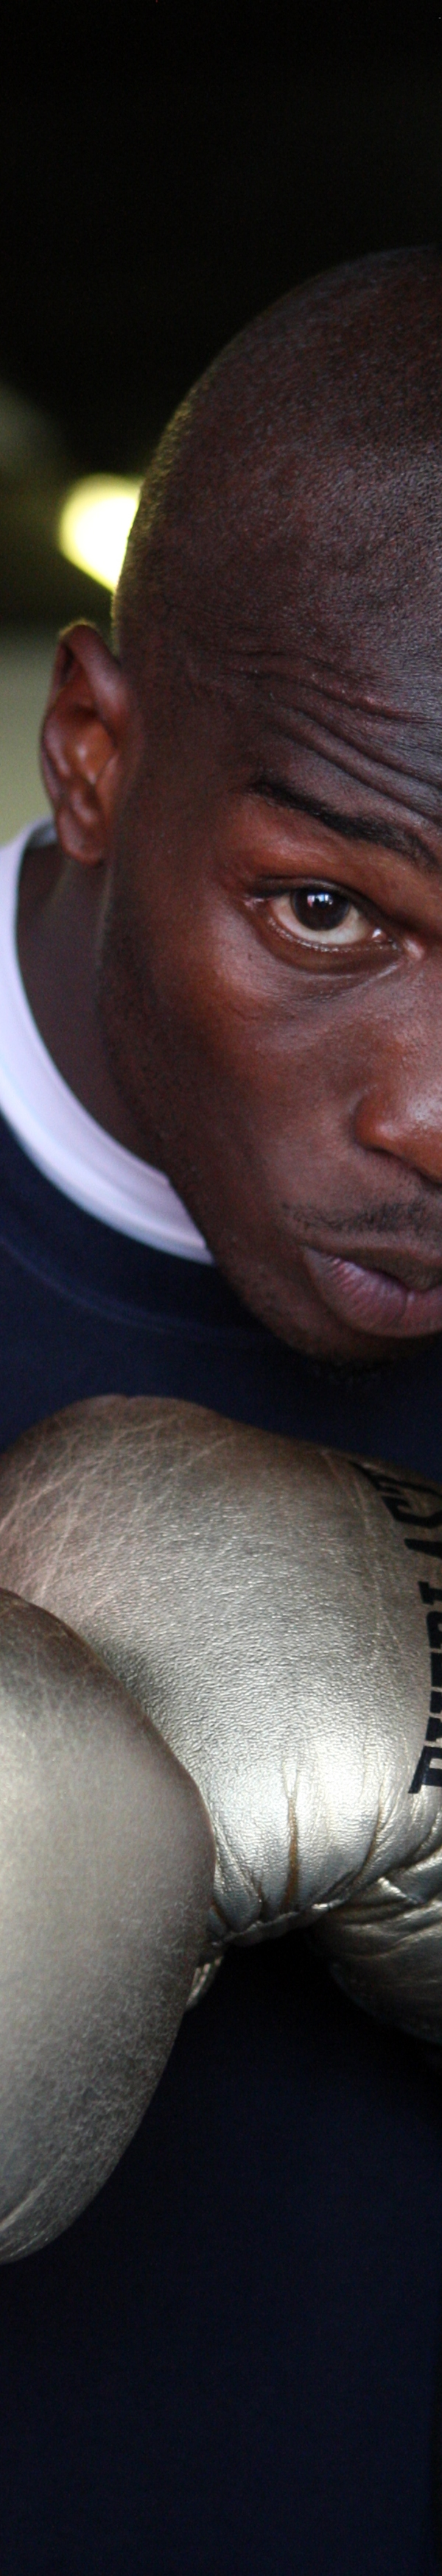 Prepare to Pucker Up with Chad Ochocinco